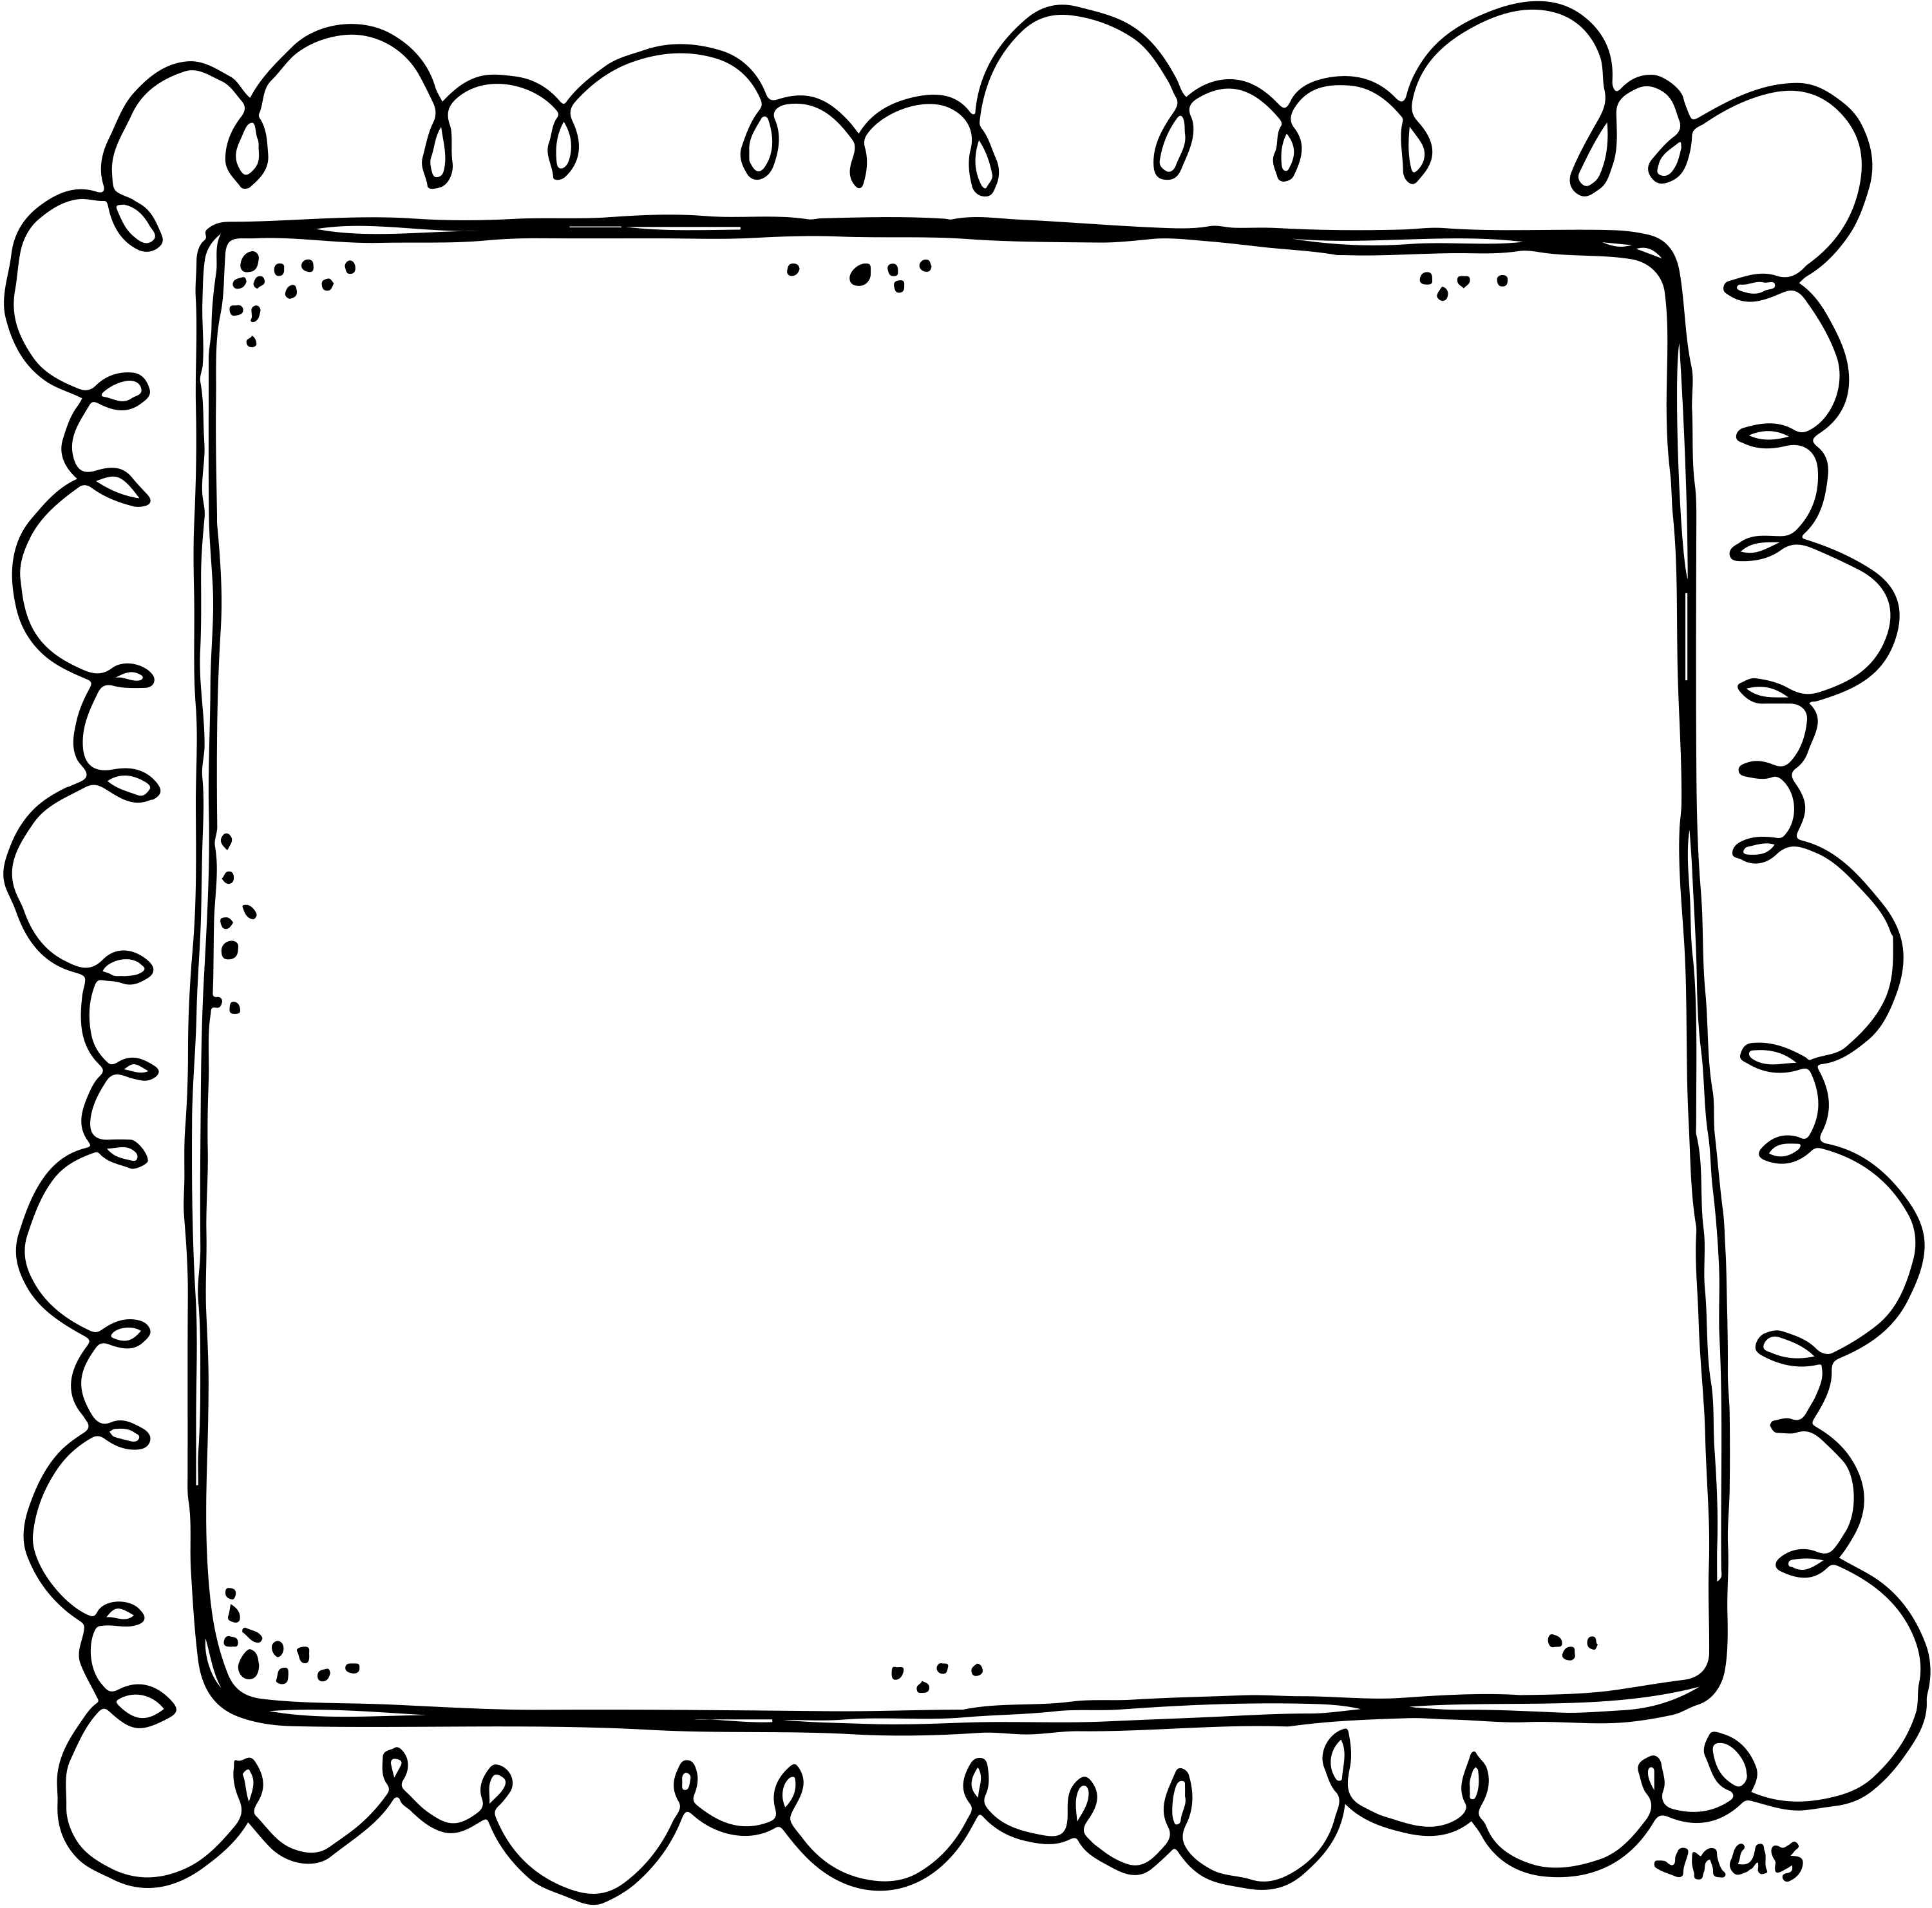 Or frame for newsletters. Announcement clipart border